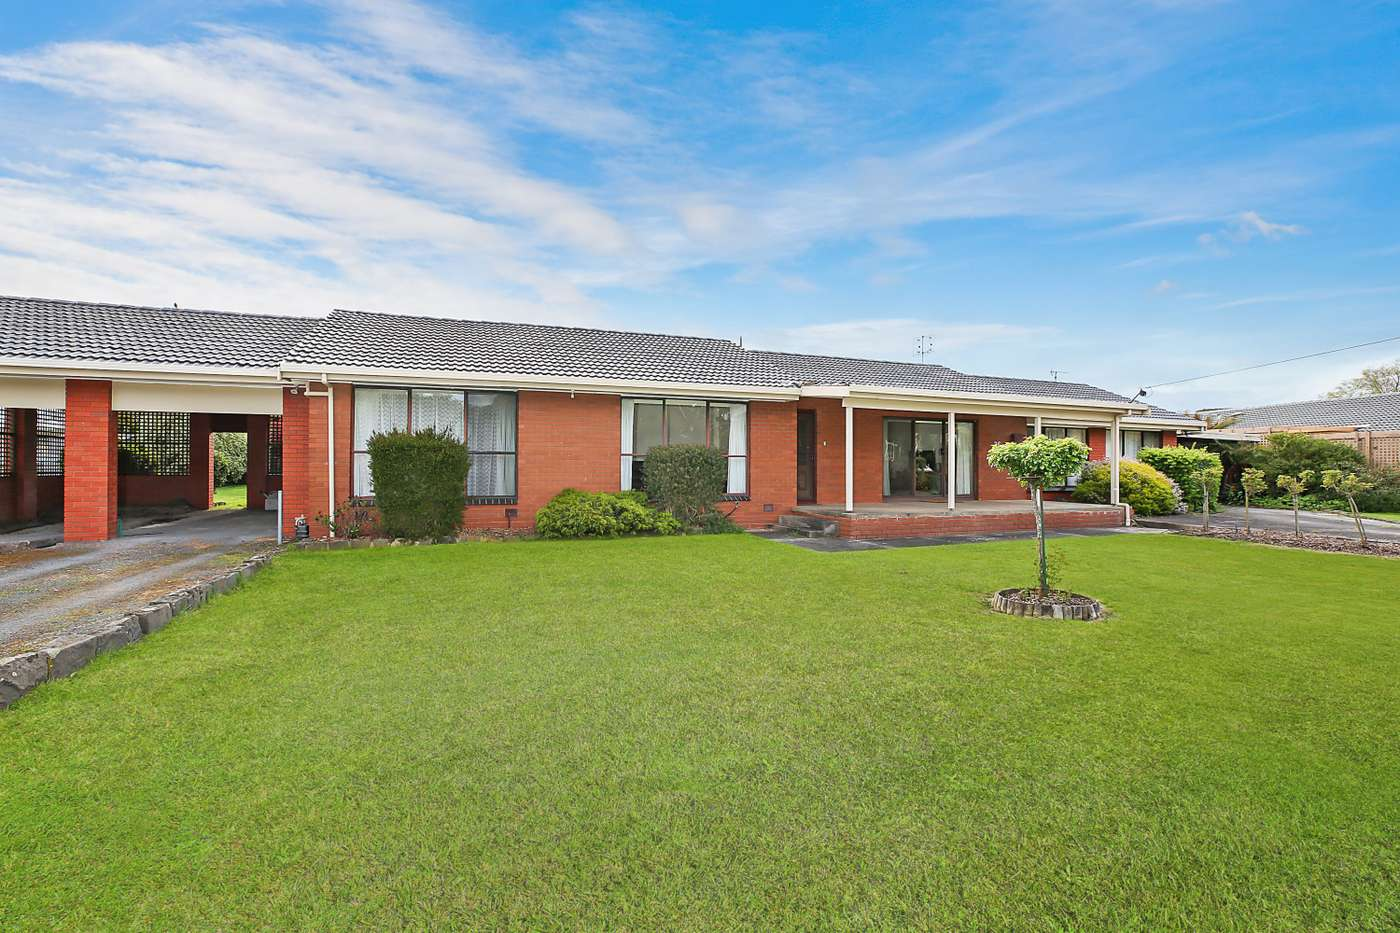 Main view of Homely house listing, 36 Talbot Street, Camperdown, VIC 3260